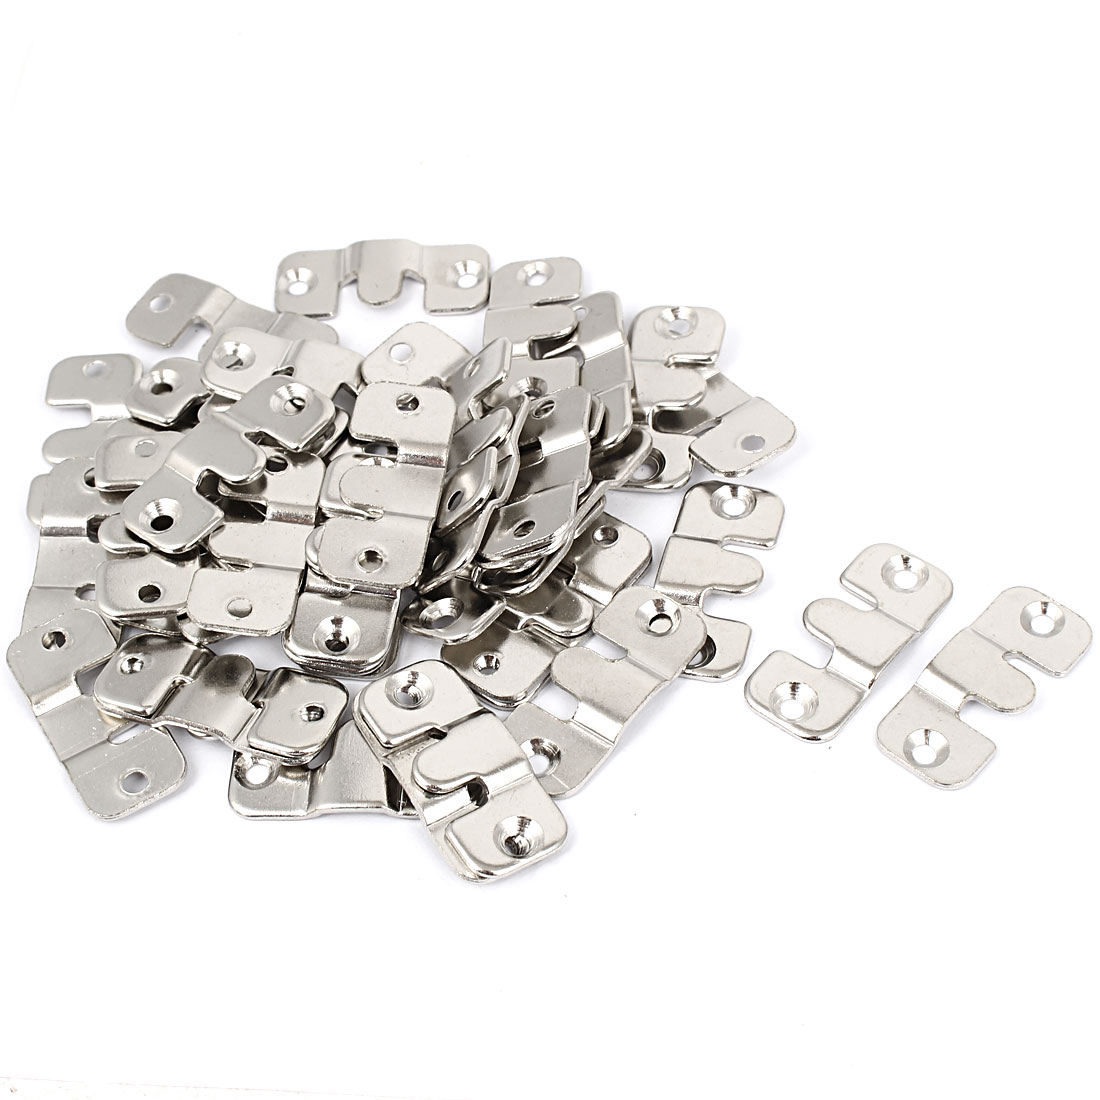 Furniture Metal Sectional Photo Frame Couch Sofa Connector Bracket 40pcs